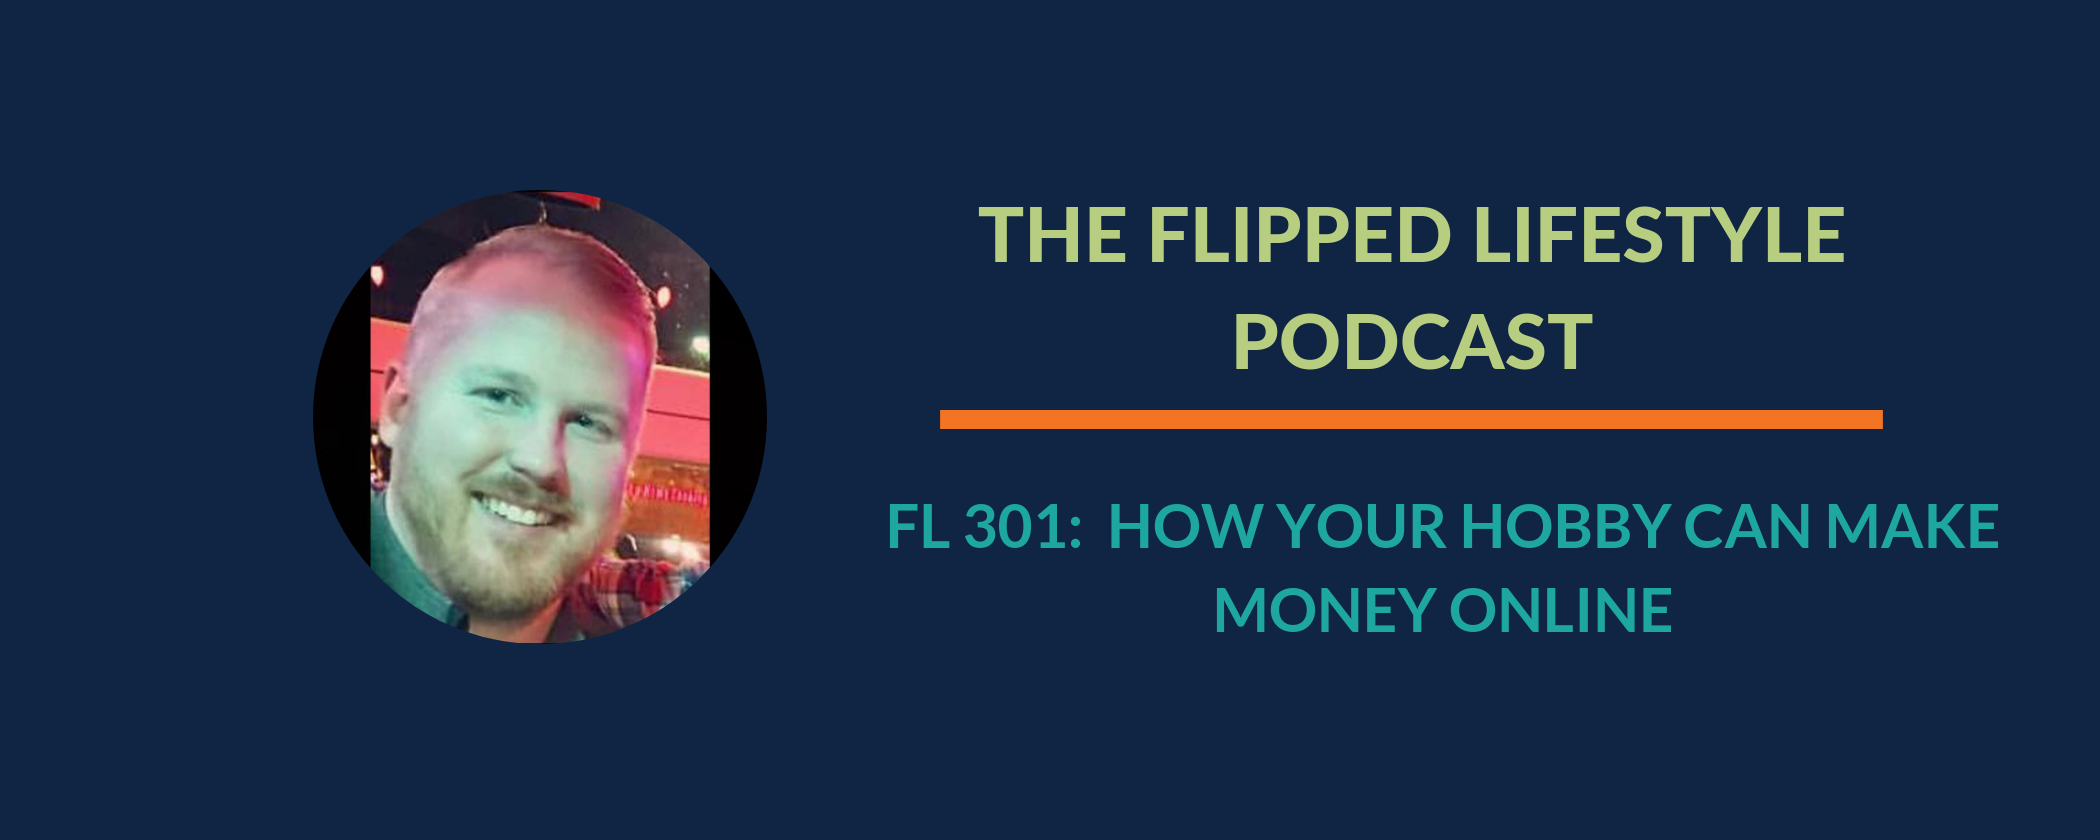 EARLY PODCAST: FL 301 - How Your Hobby Can Make Money Online